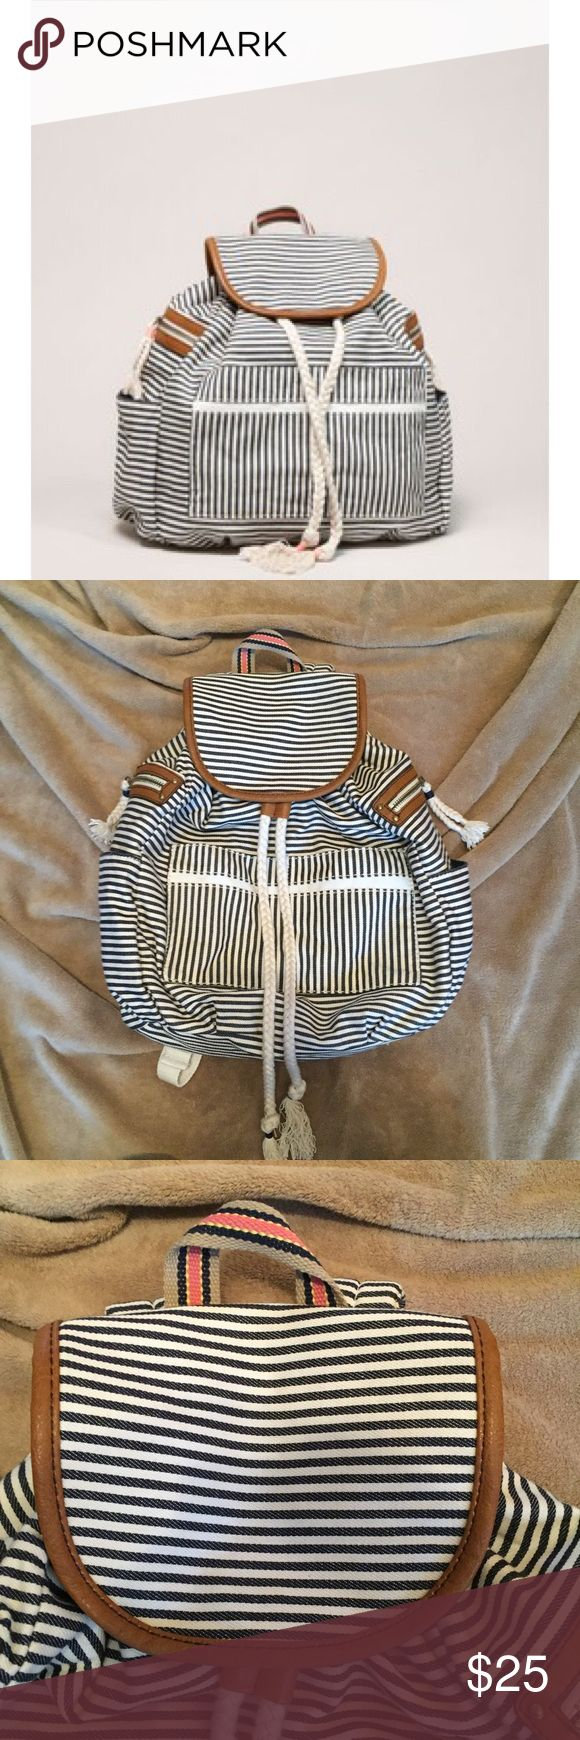 American Eagle Striped Nautical Backpack American eagle navy blue and cream striped backpack! With 4 outside pockets! Has fringe and tassels! Only used once! Inside is perfectly clean. American Eagle Outfitters Bags Backpacks